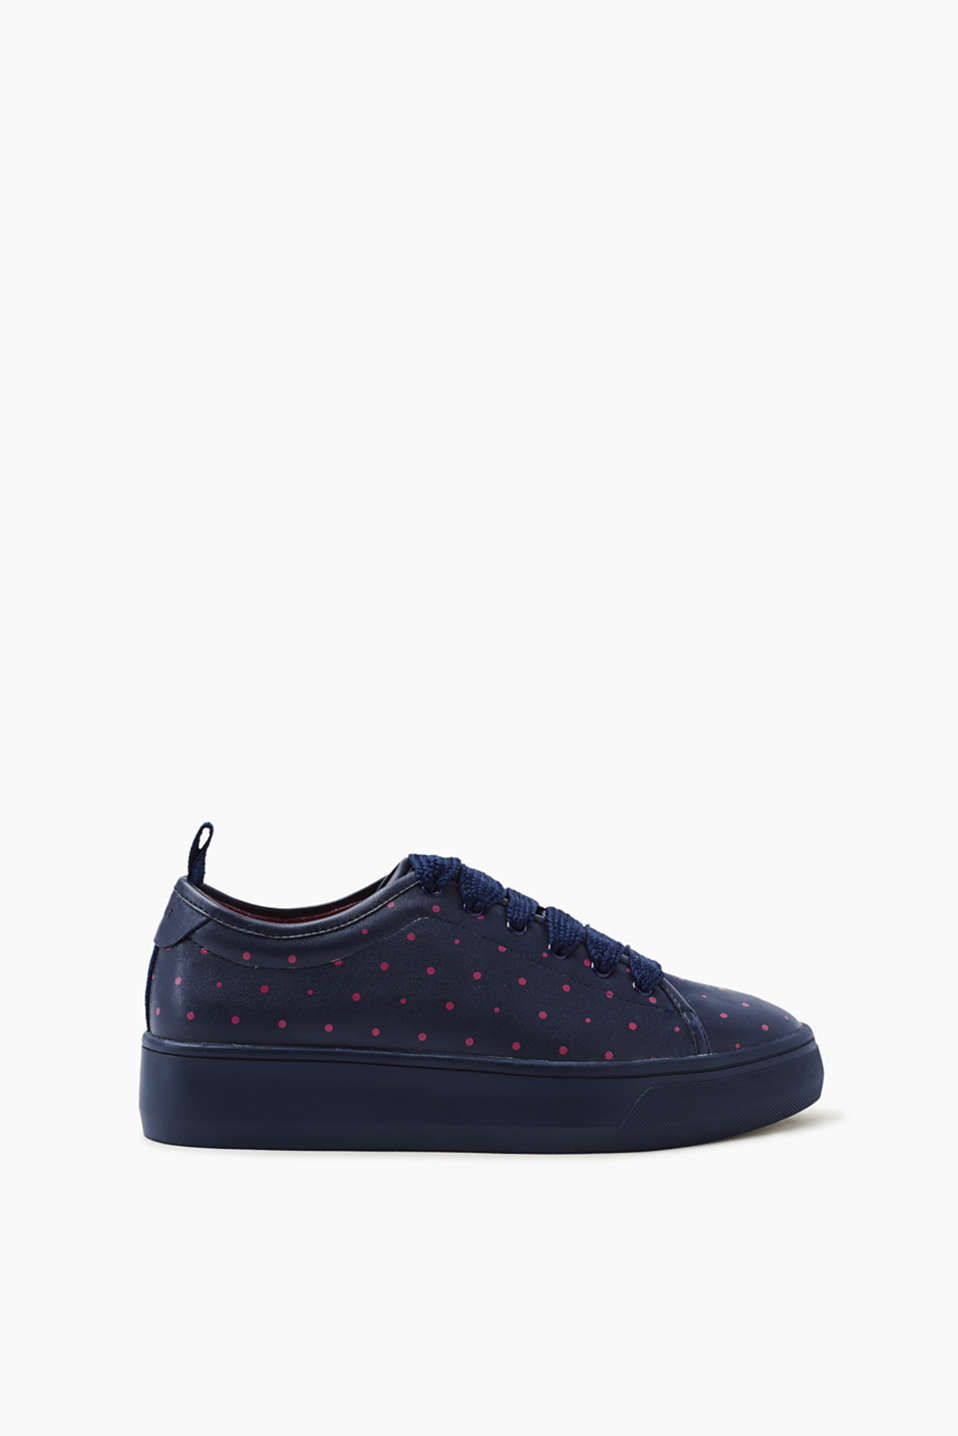 Esprit - Cool trendy trainers with a polka dot print